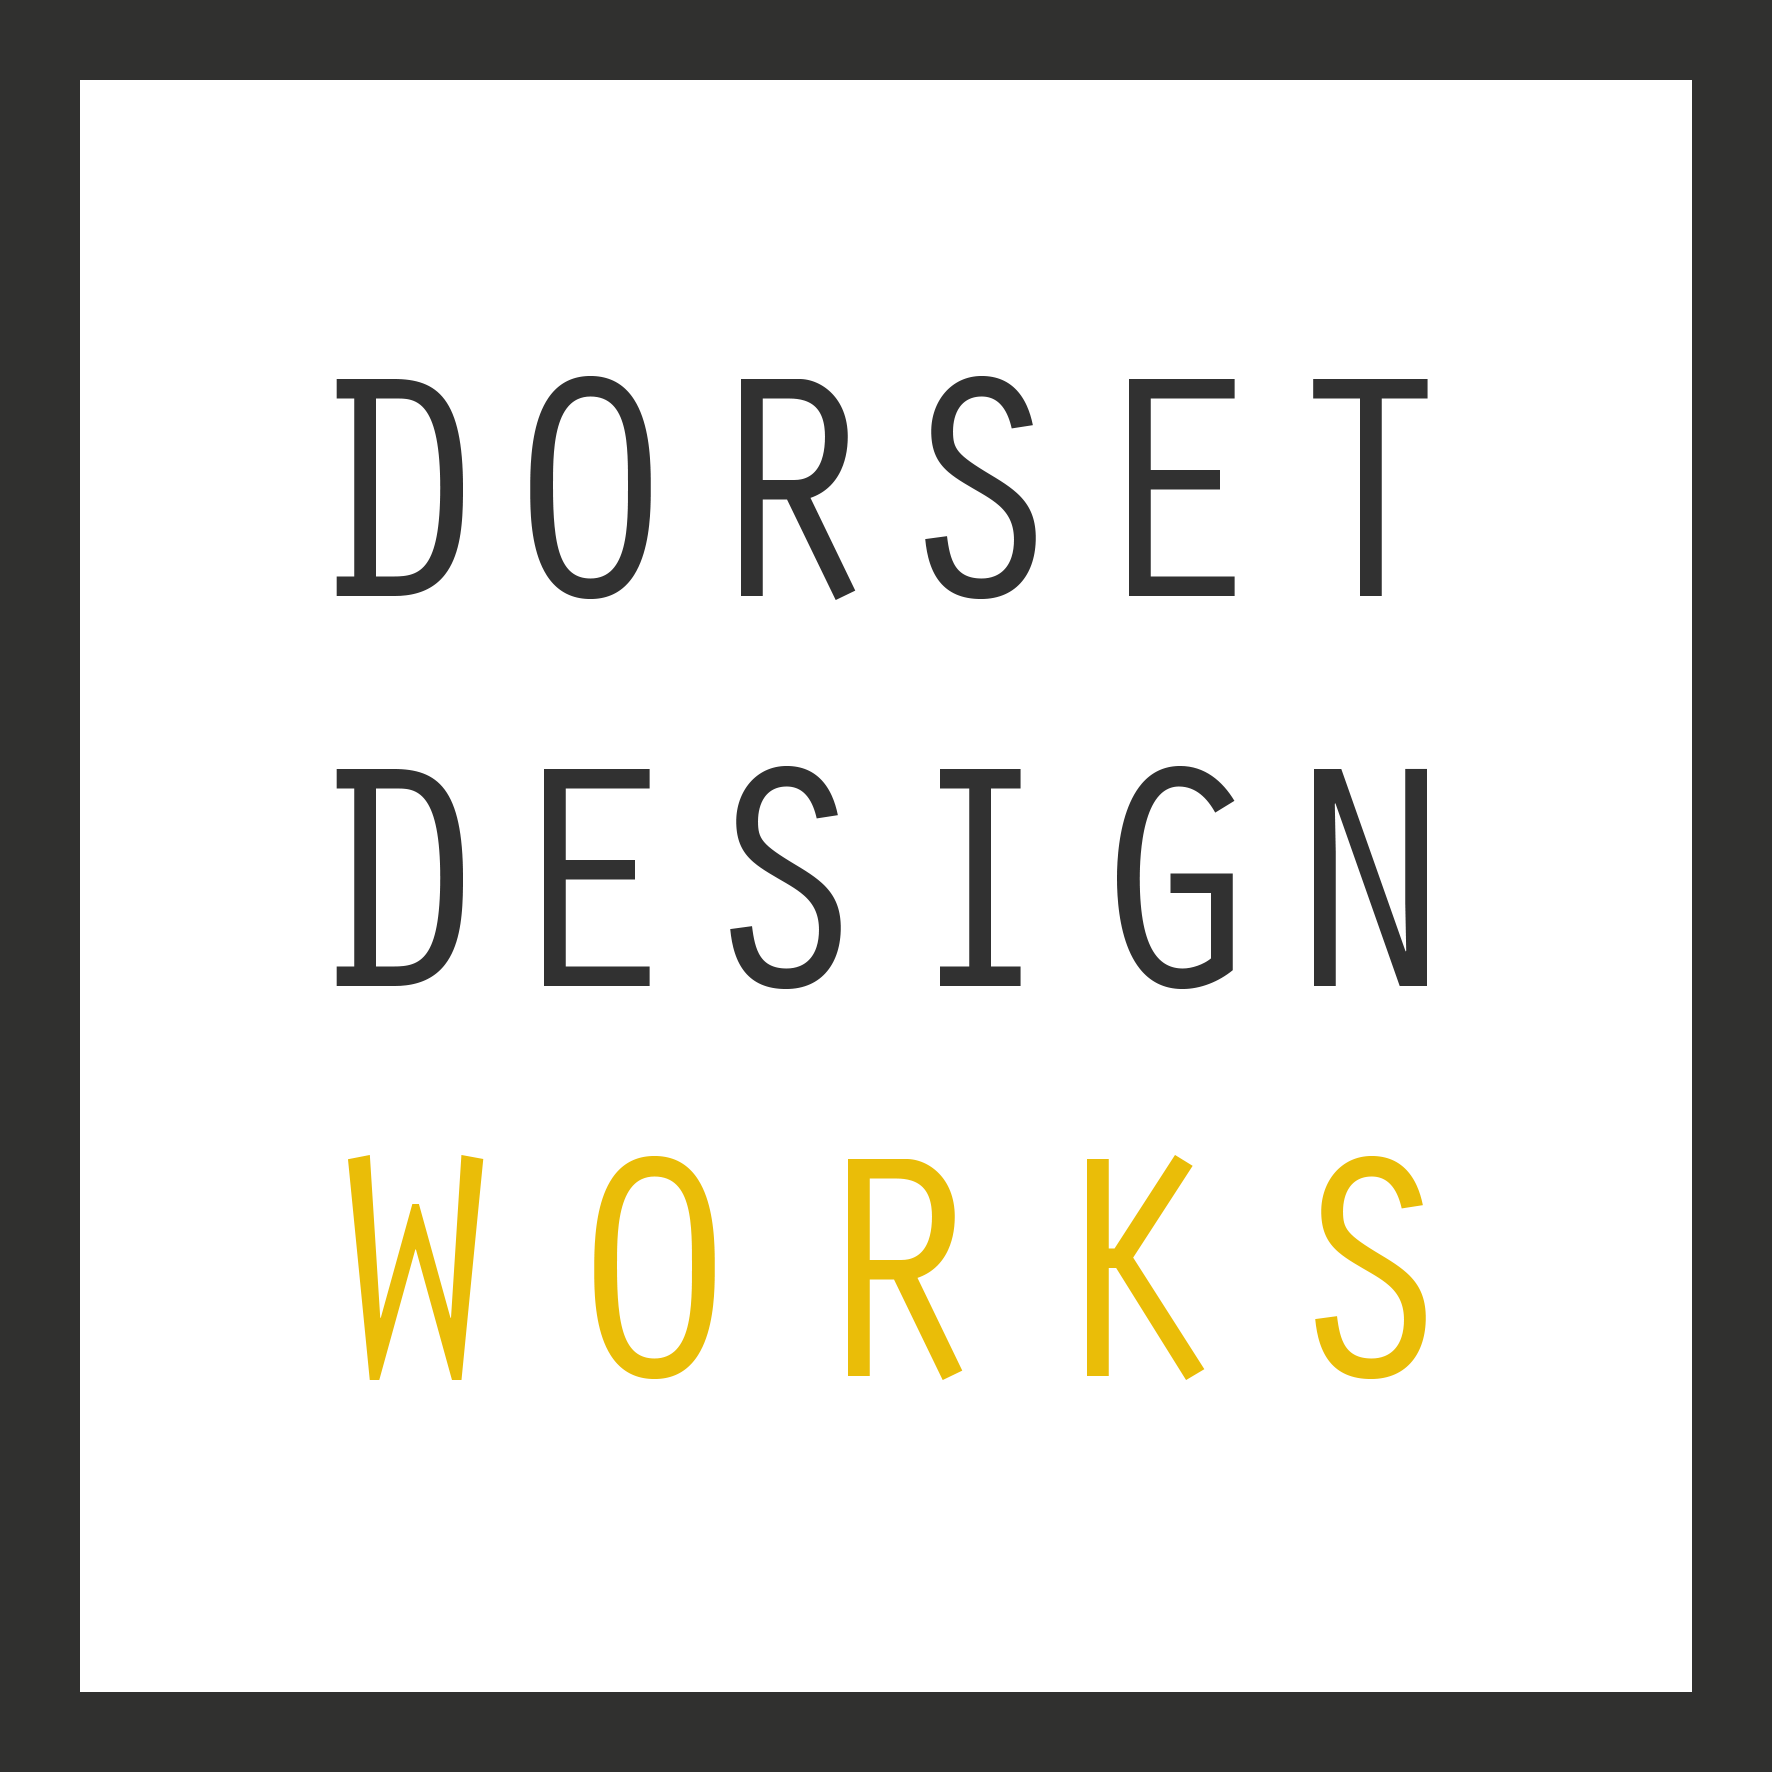 Dorset Design Works